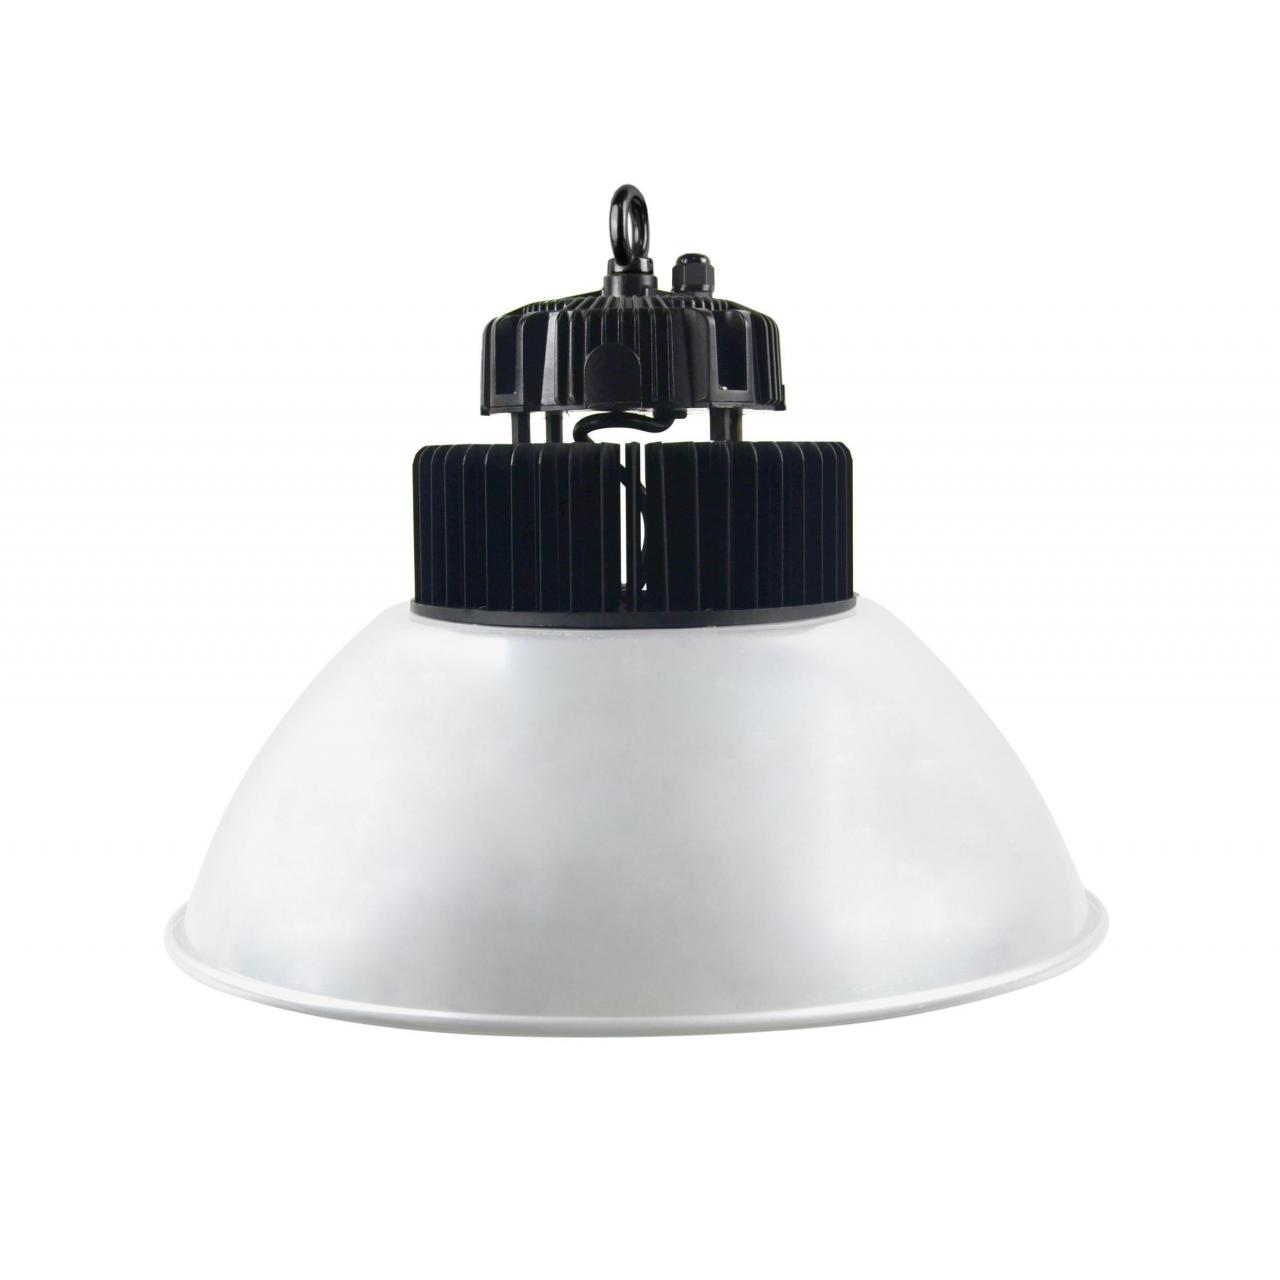 Meanwell Driver 160W LED high bay light